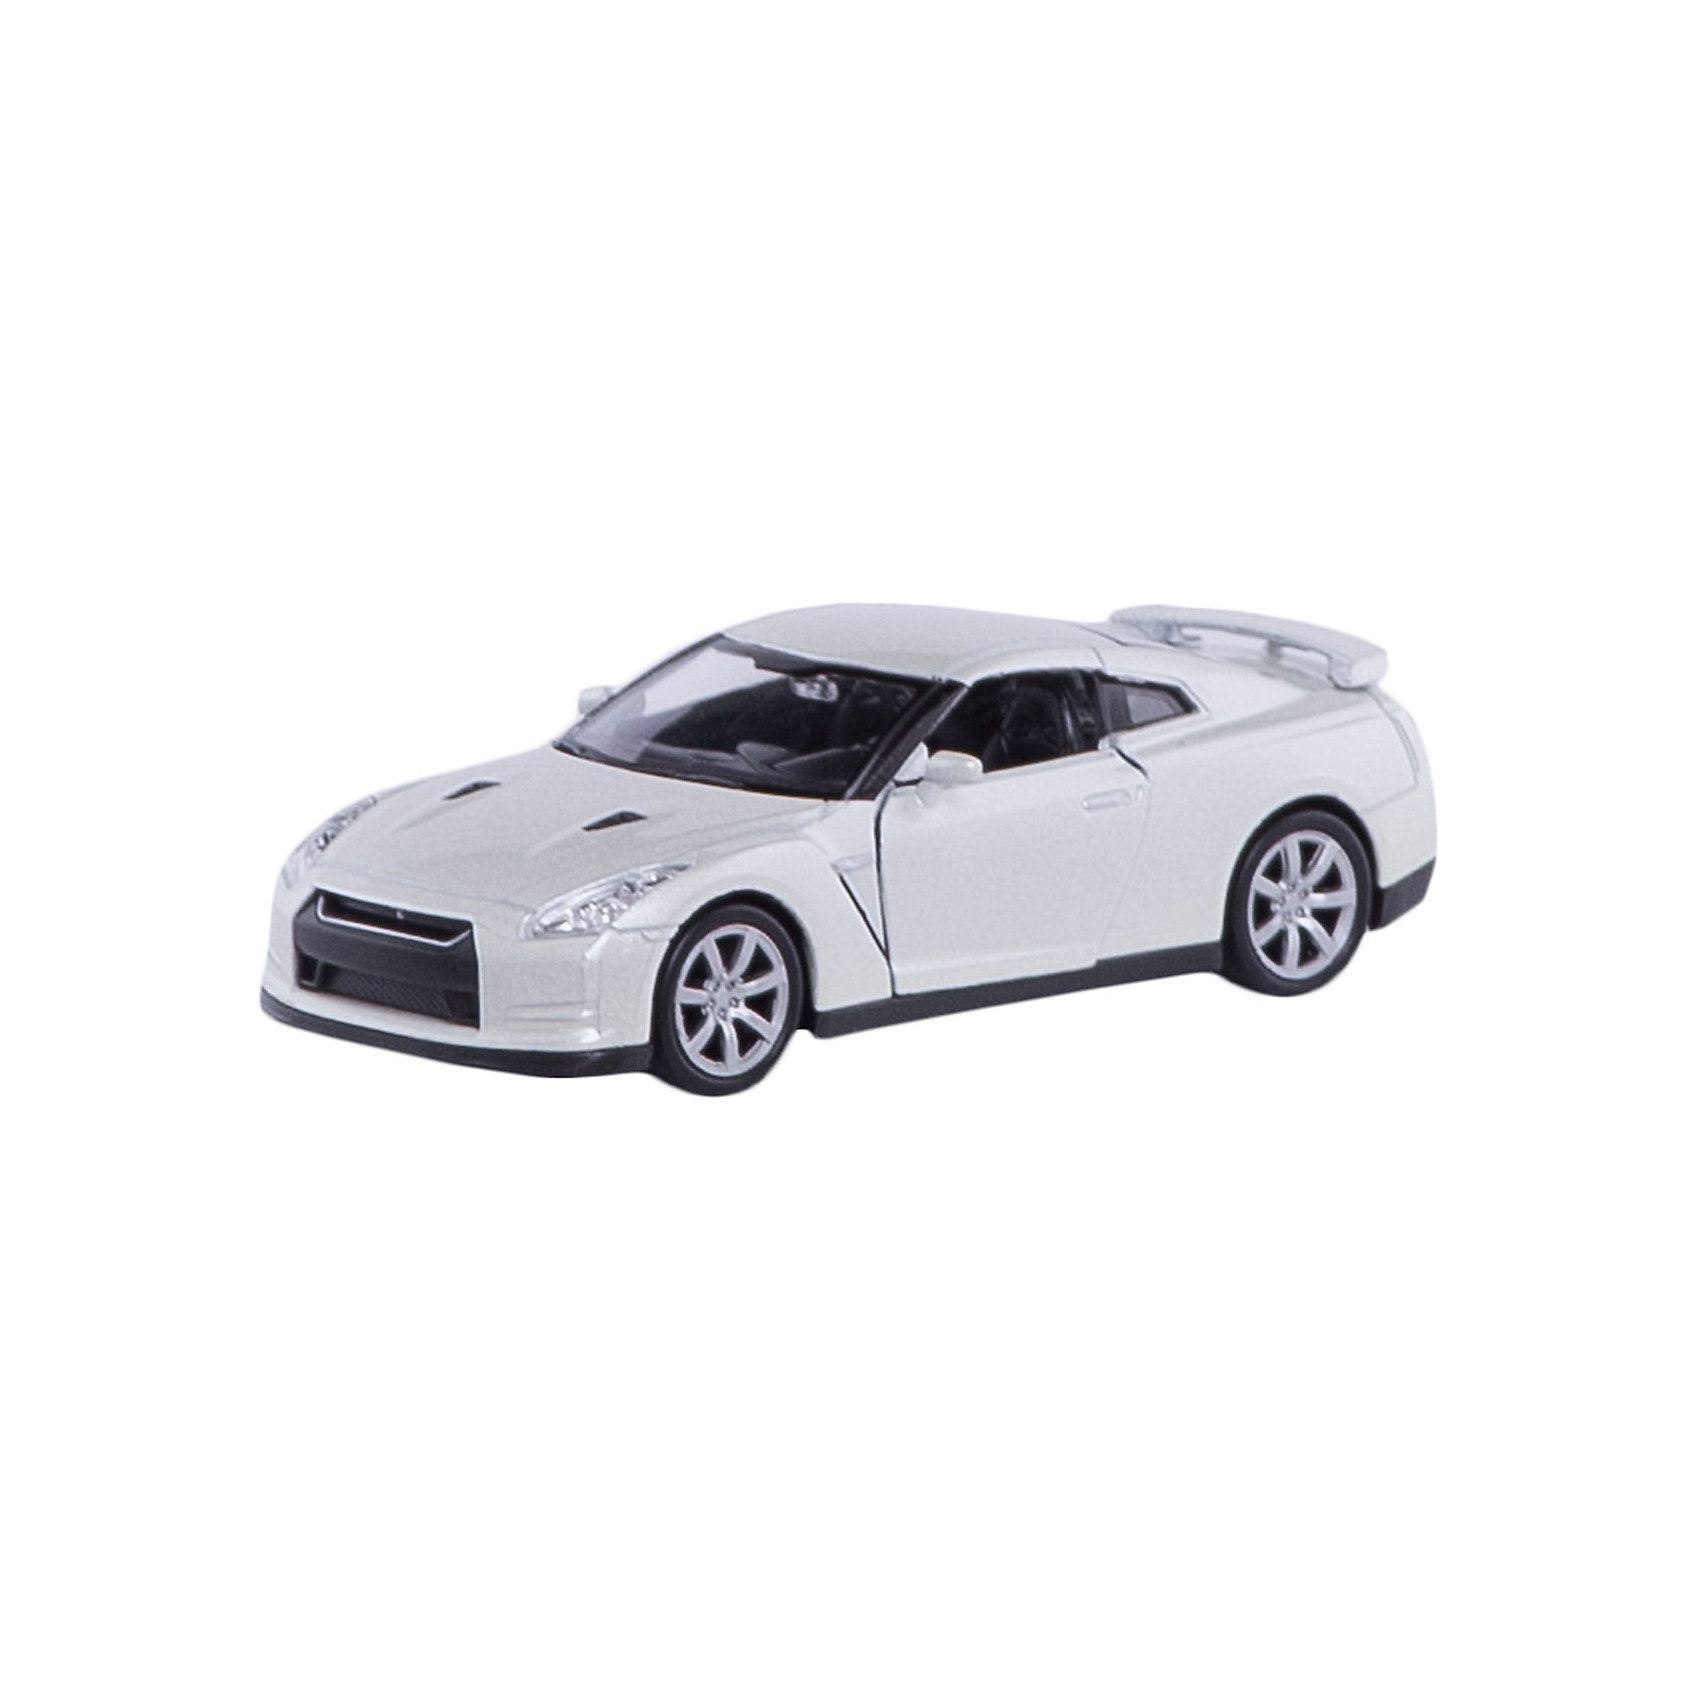 Welly Модель машины 1:34-39 Nissan GTR, Welly for nissan gtr gtr r35 led tail lights 2007 red